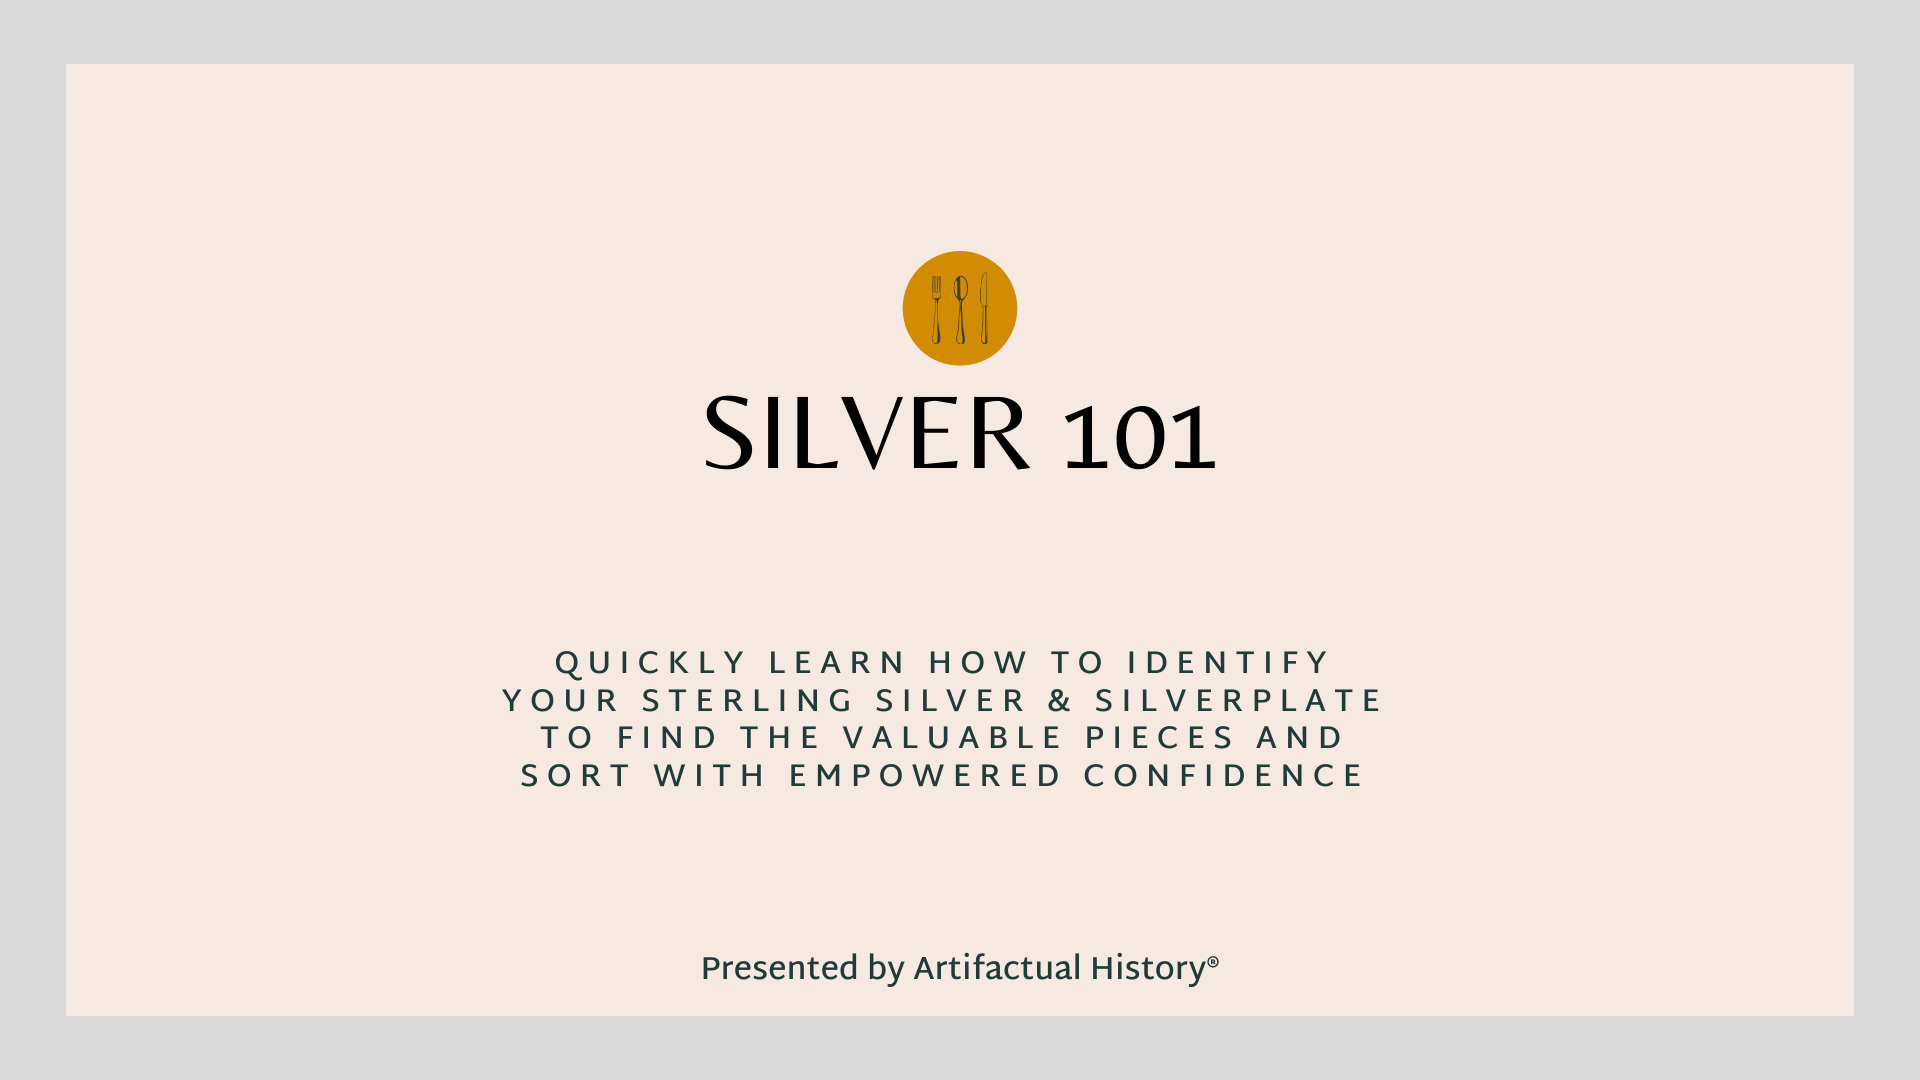 Silver 101: Quickly Learn How To Identify Your Sterling Silver & Silverplate To Find the Valuable Pieces and Sort With Empowered Confidence